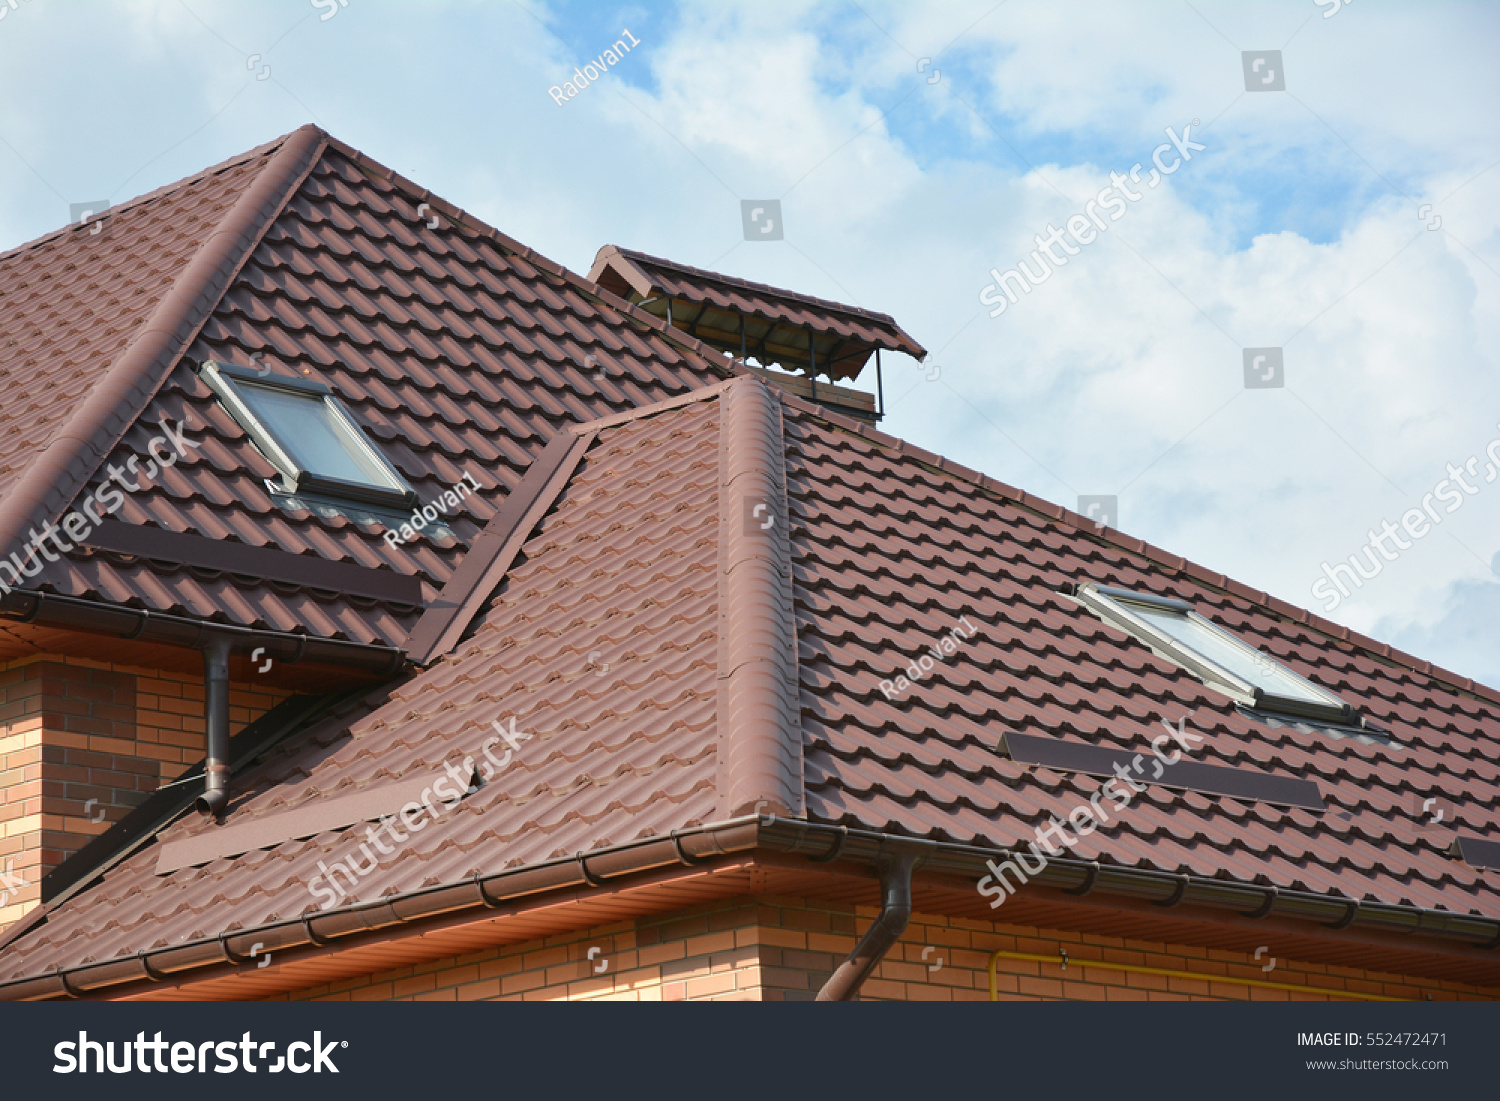 Modern House Roofing Construction With Attic Skylights, Rain Gutter System, Roof  Windows, Roof